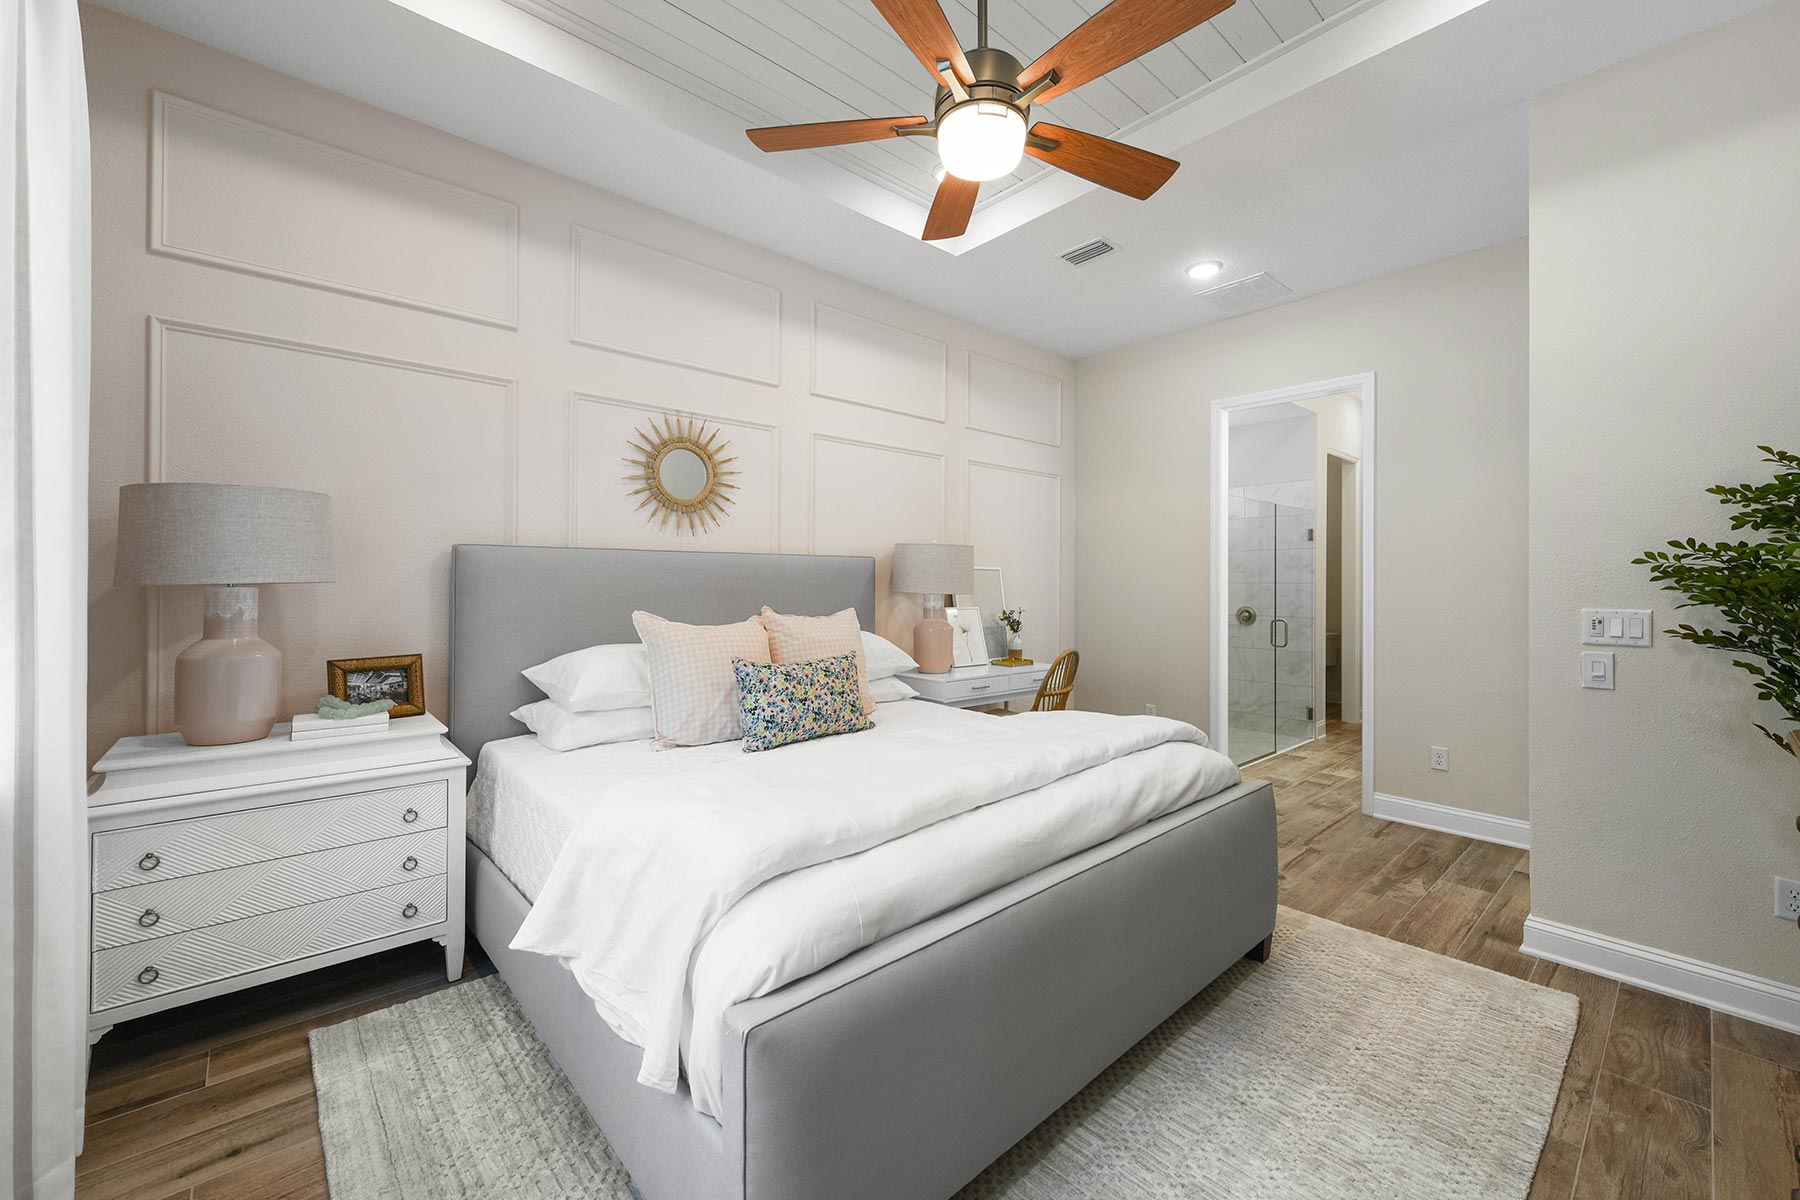 Court Plan Bedroom at RiverTown - WaterSong in St. Johns Florida by Mattamy Homes